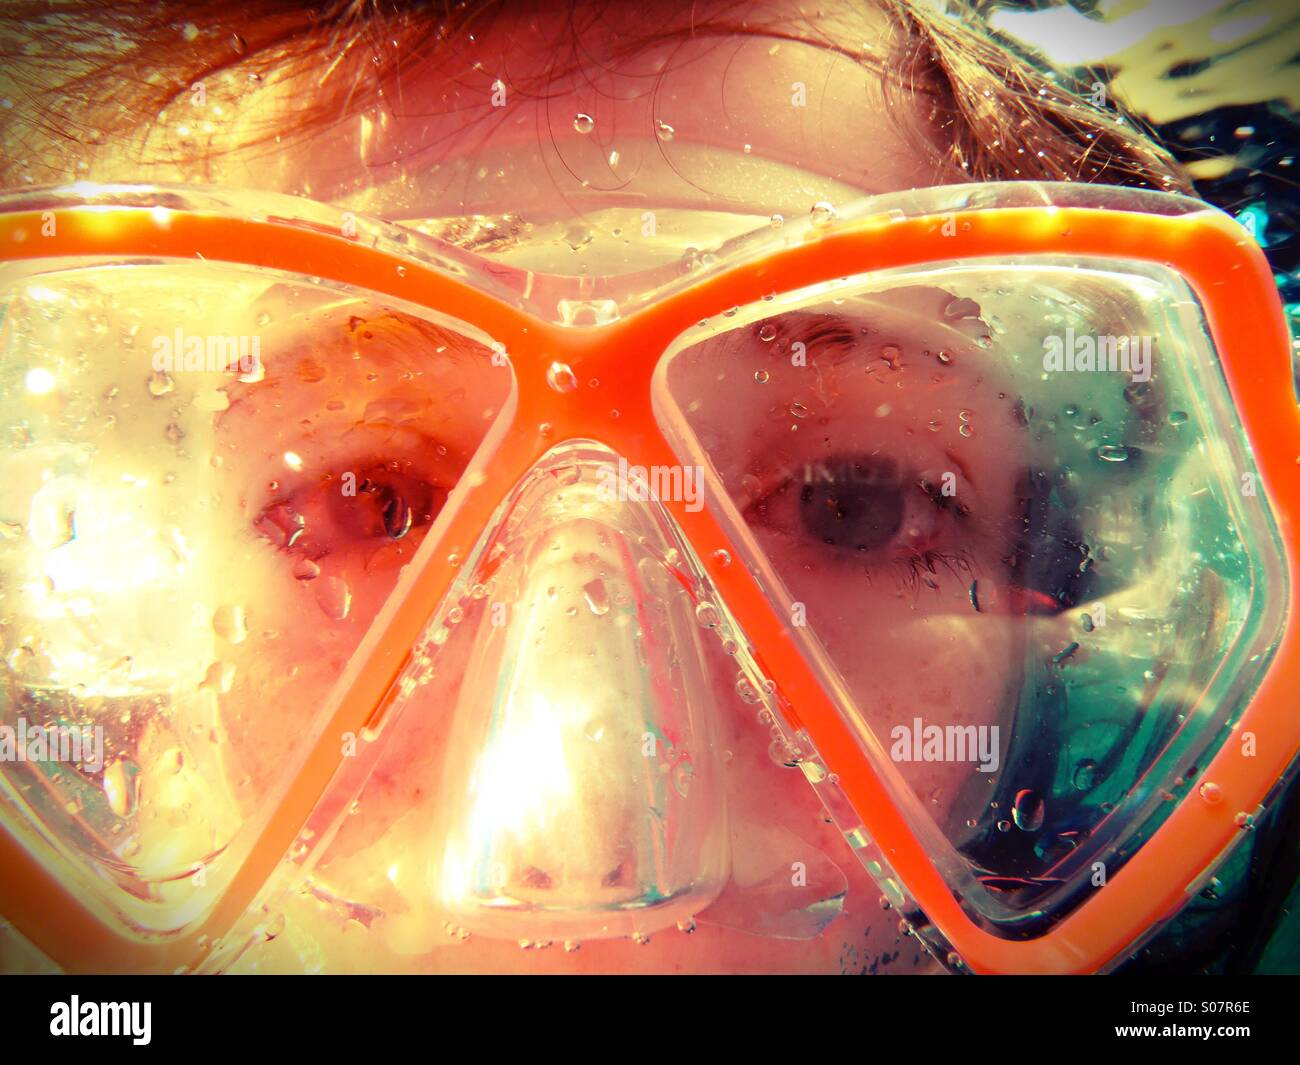 Underwater eyes - girl diver wearing goggles - Stock Image